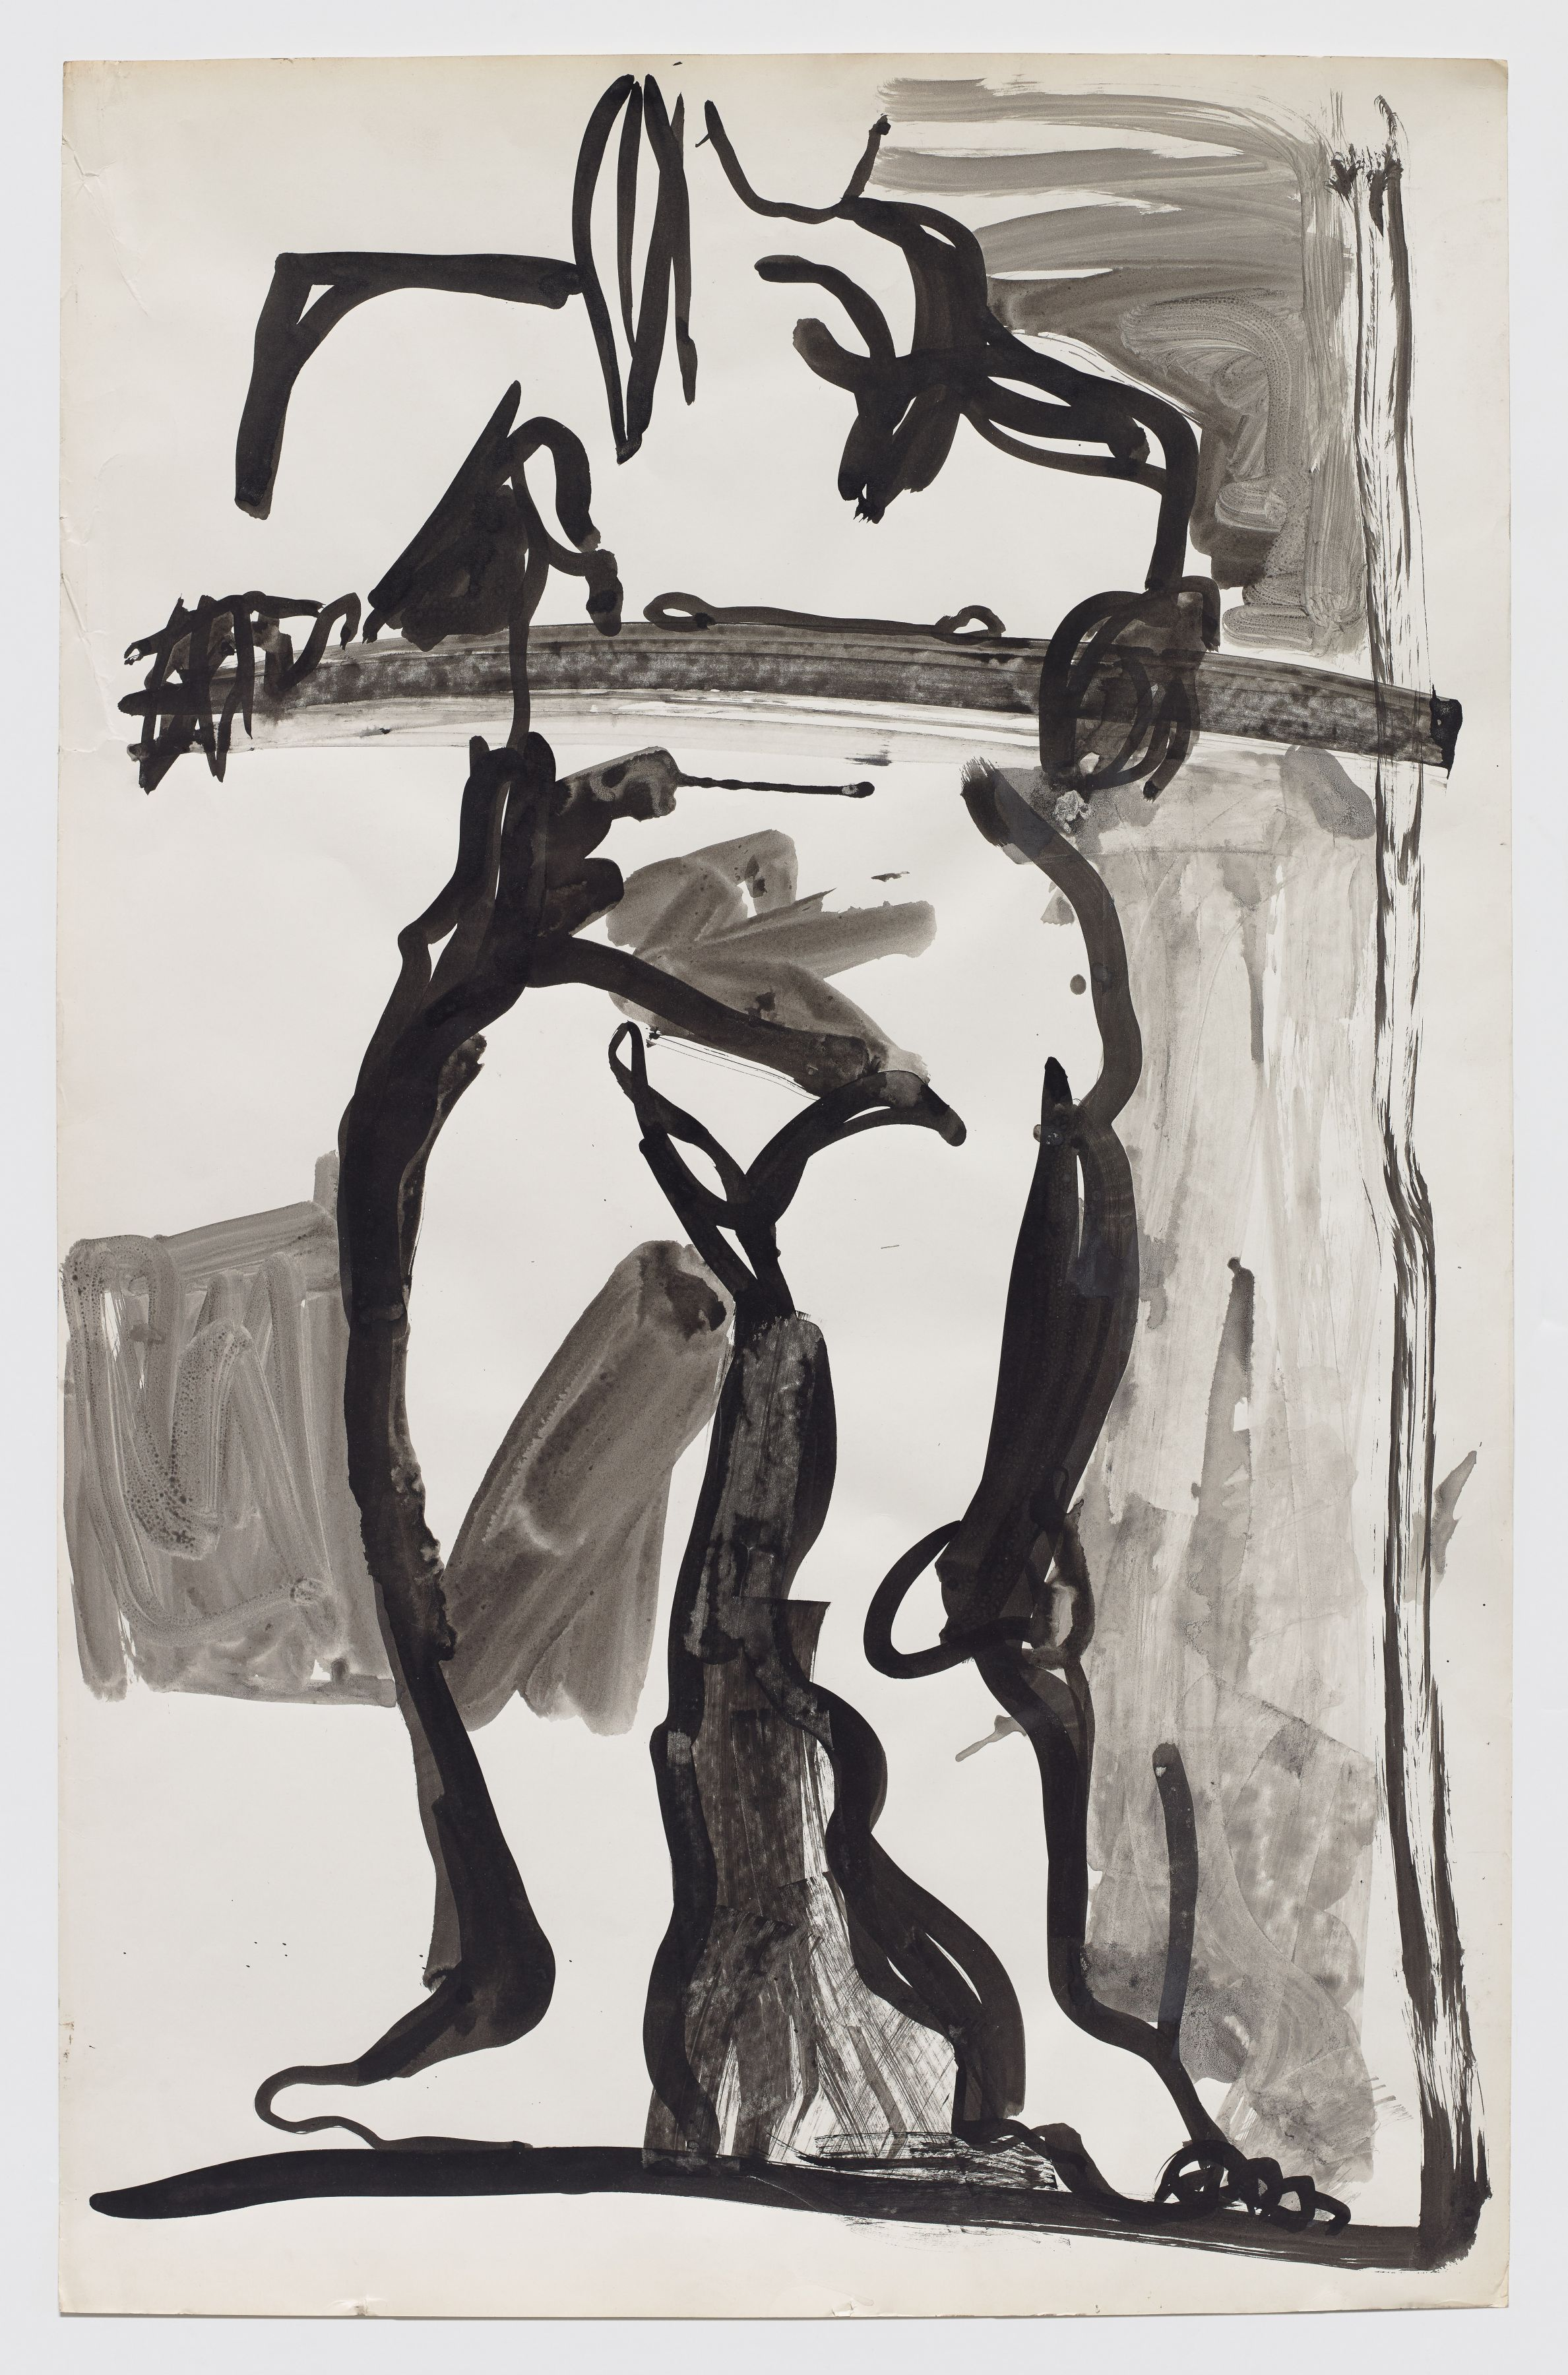 Untitled (figure study), c. 1971, Mixed media on paper